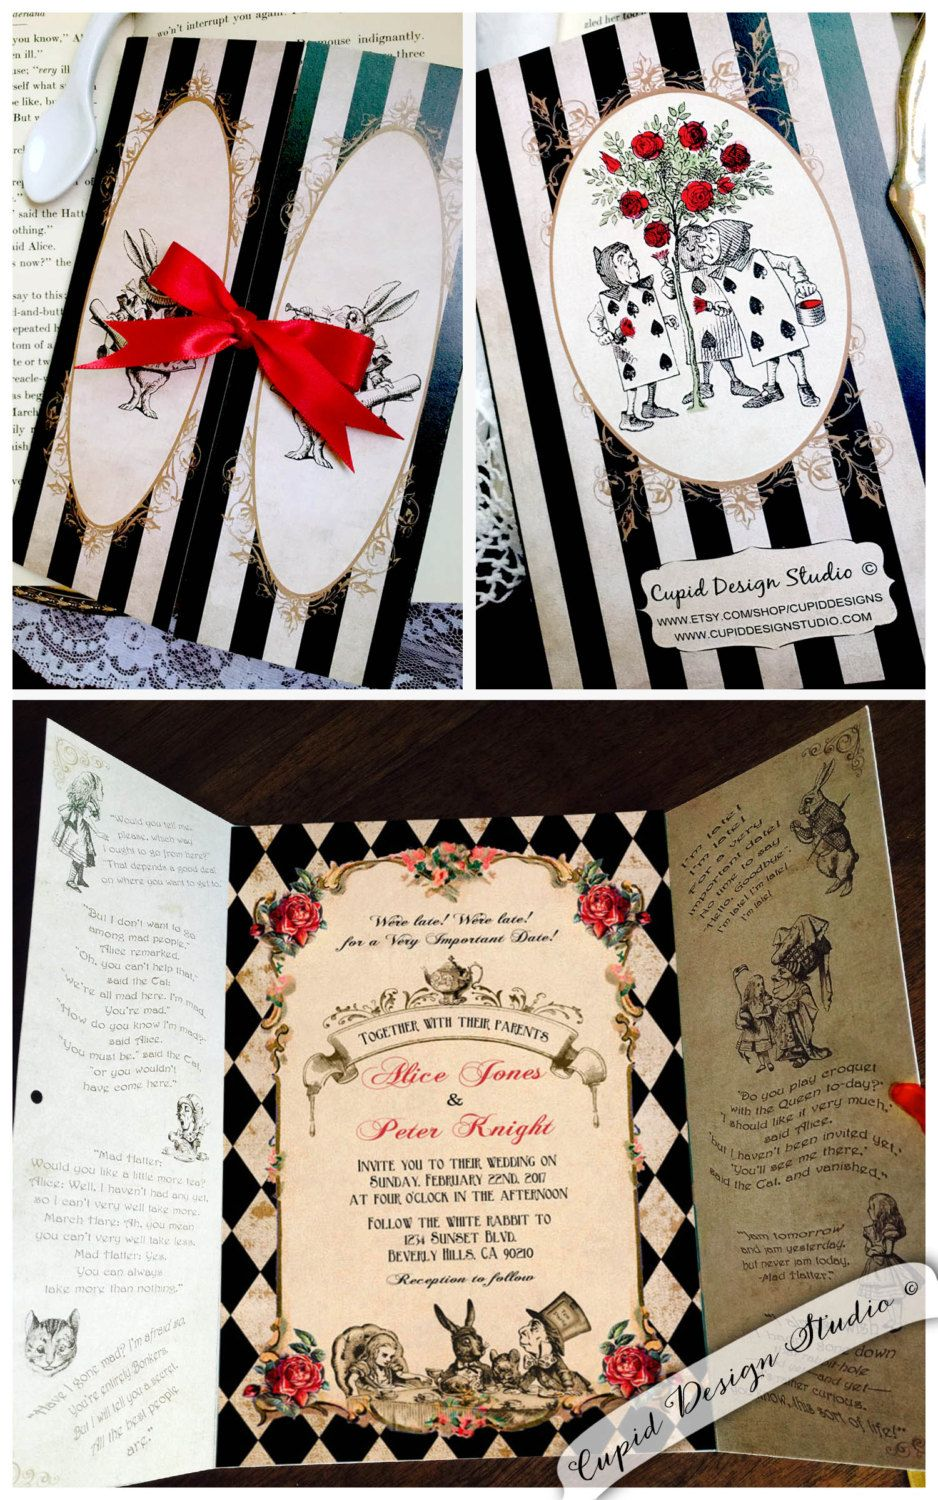 mad hatter teparty invitations pinterest%0A New to CupidDesigns on Etsy  Elegant Alice in Wonderland invitation  Mad  Hatter tea party